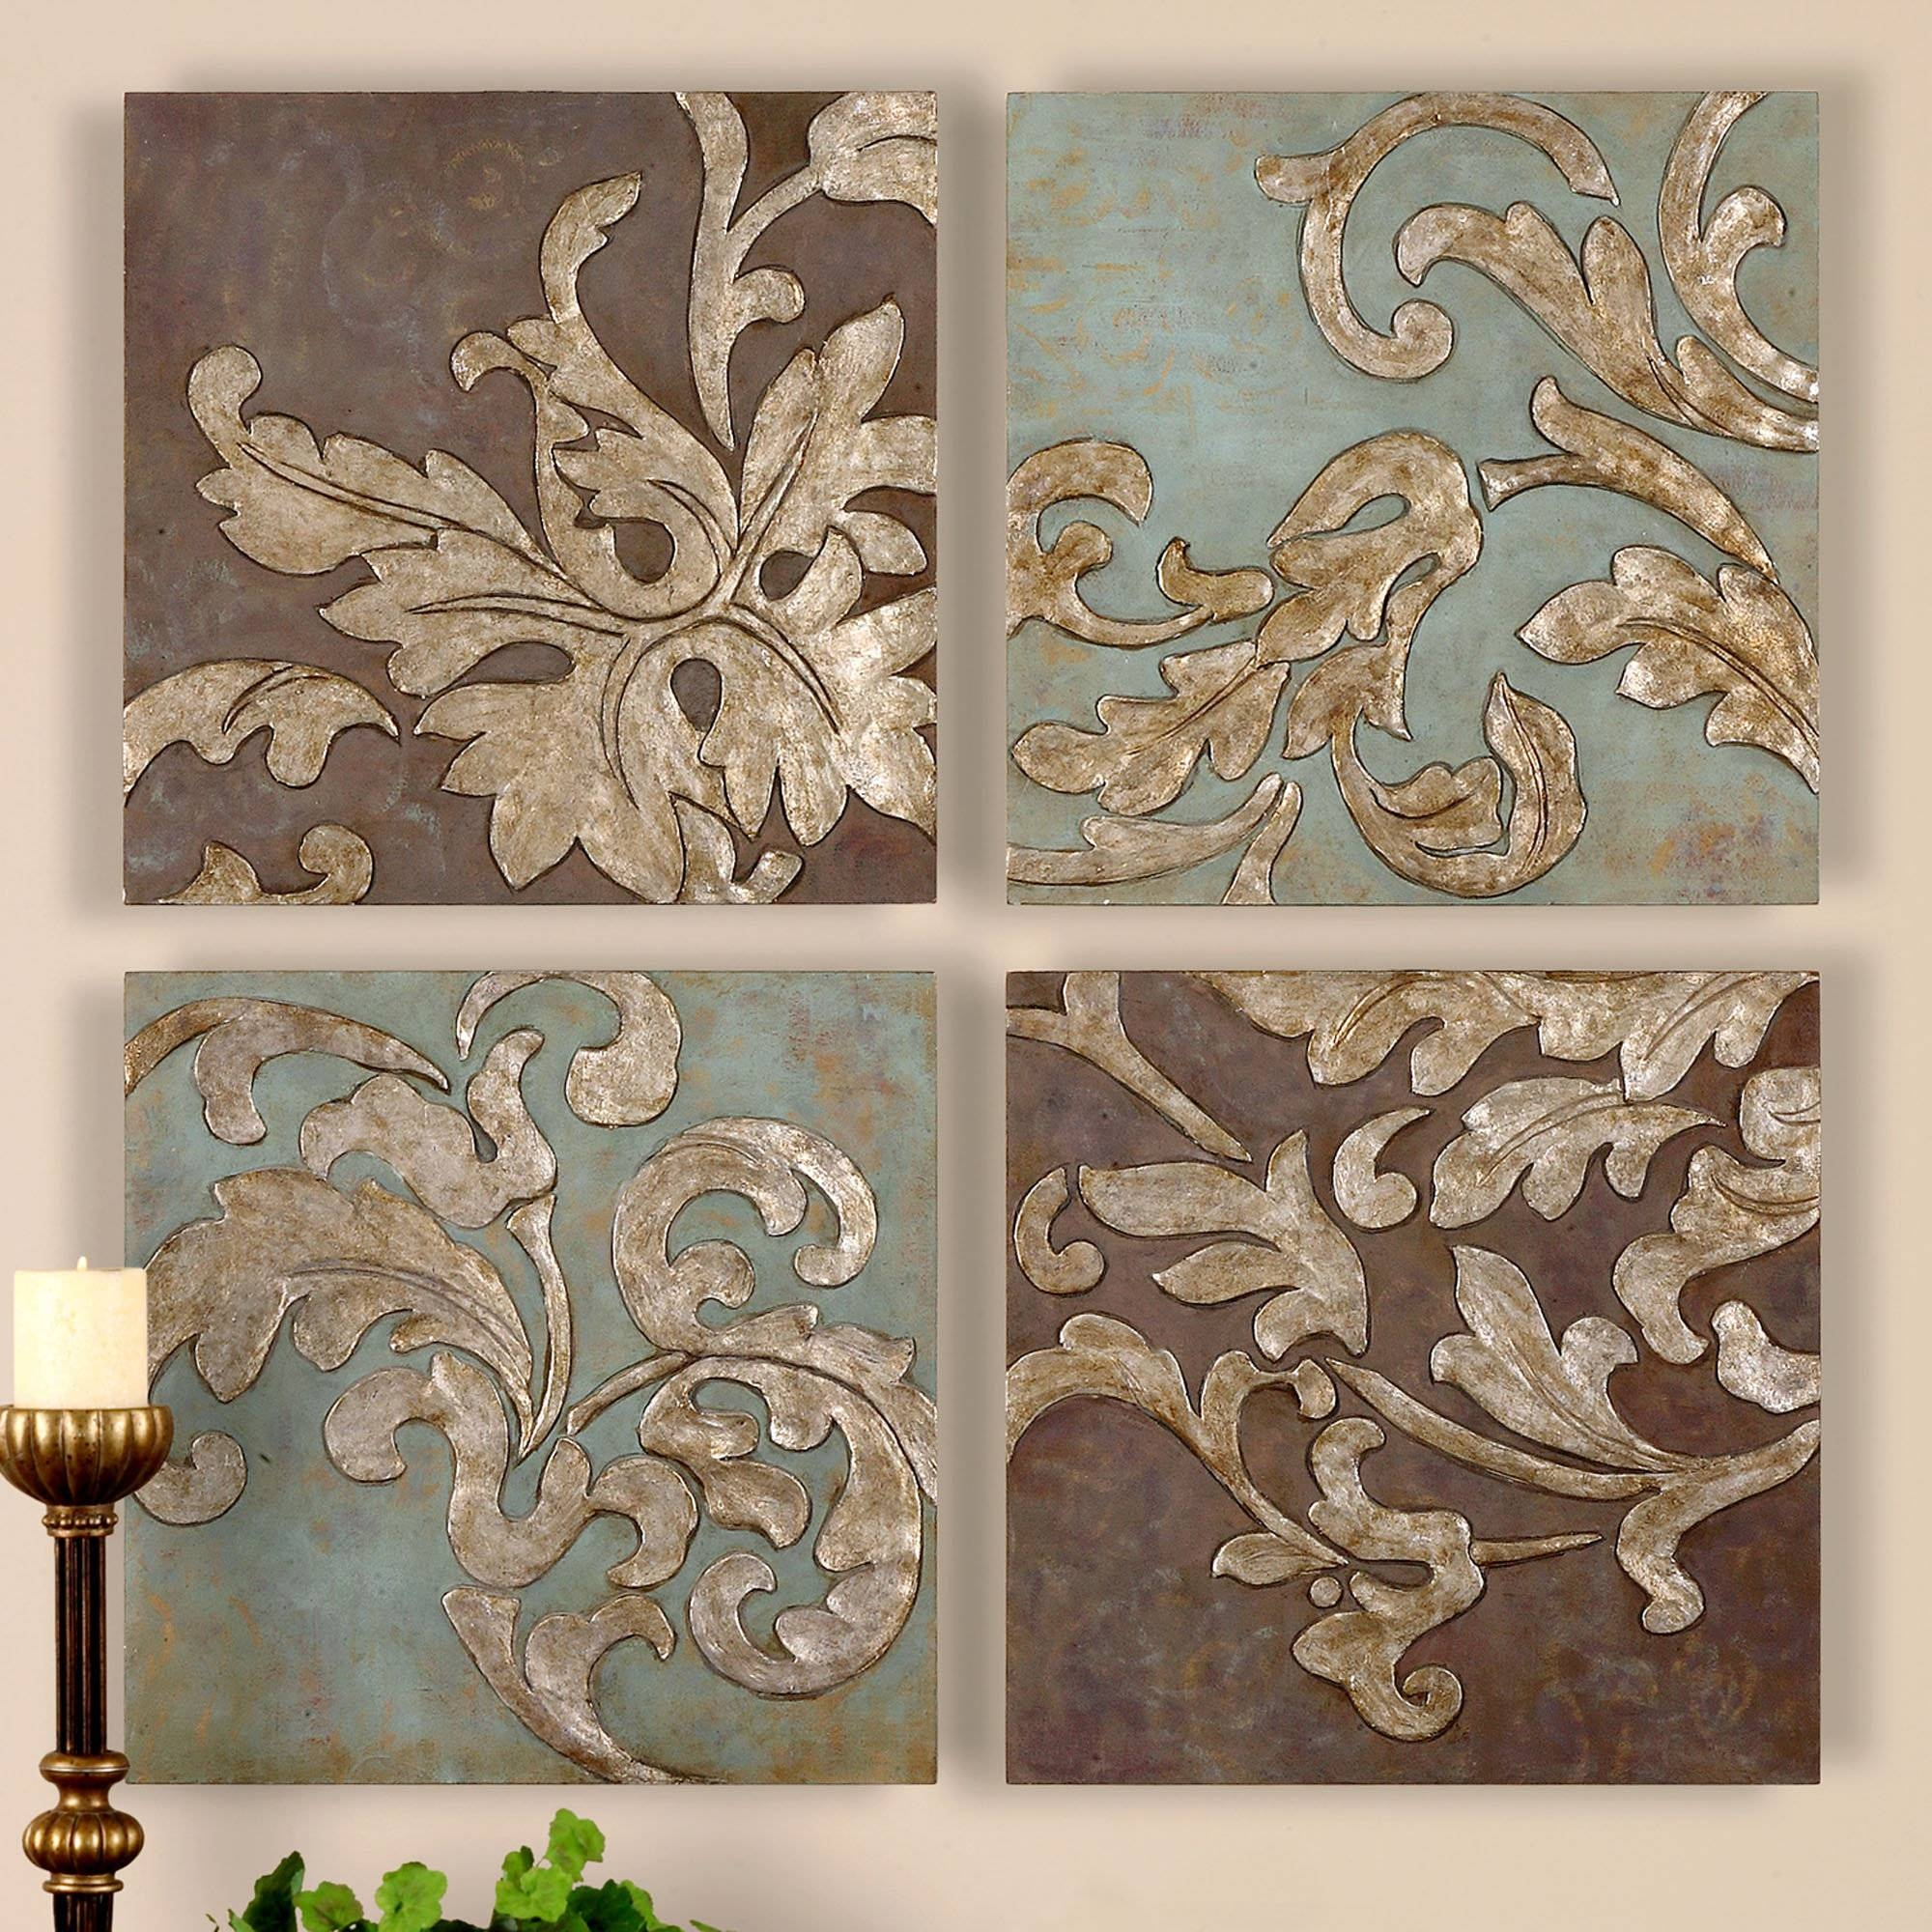 Impressive Antique Wall Art 108 Vintage Outdoor Wall Art Metal With Most Up To Date Vintage Metal Wall Art (Gallery 18 of 20)